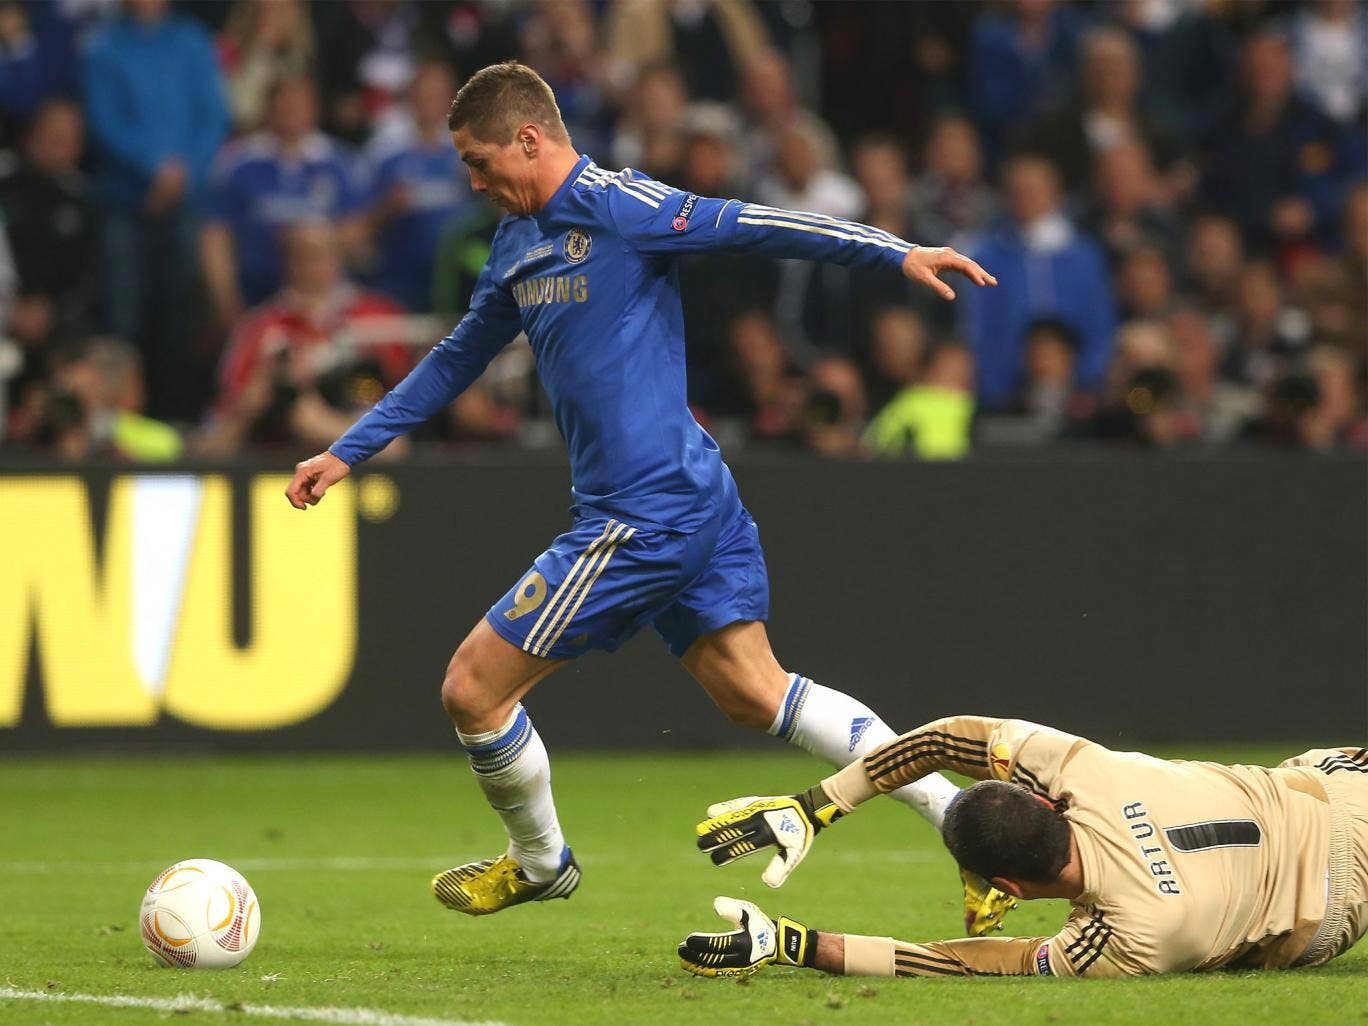 Fernando Torres beats Artur before slotting the ball into the empty net to make it 1-0